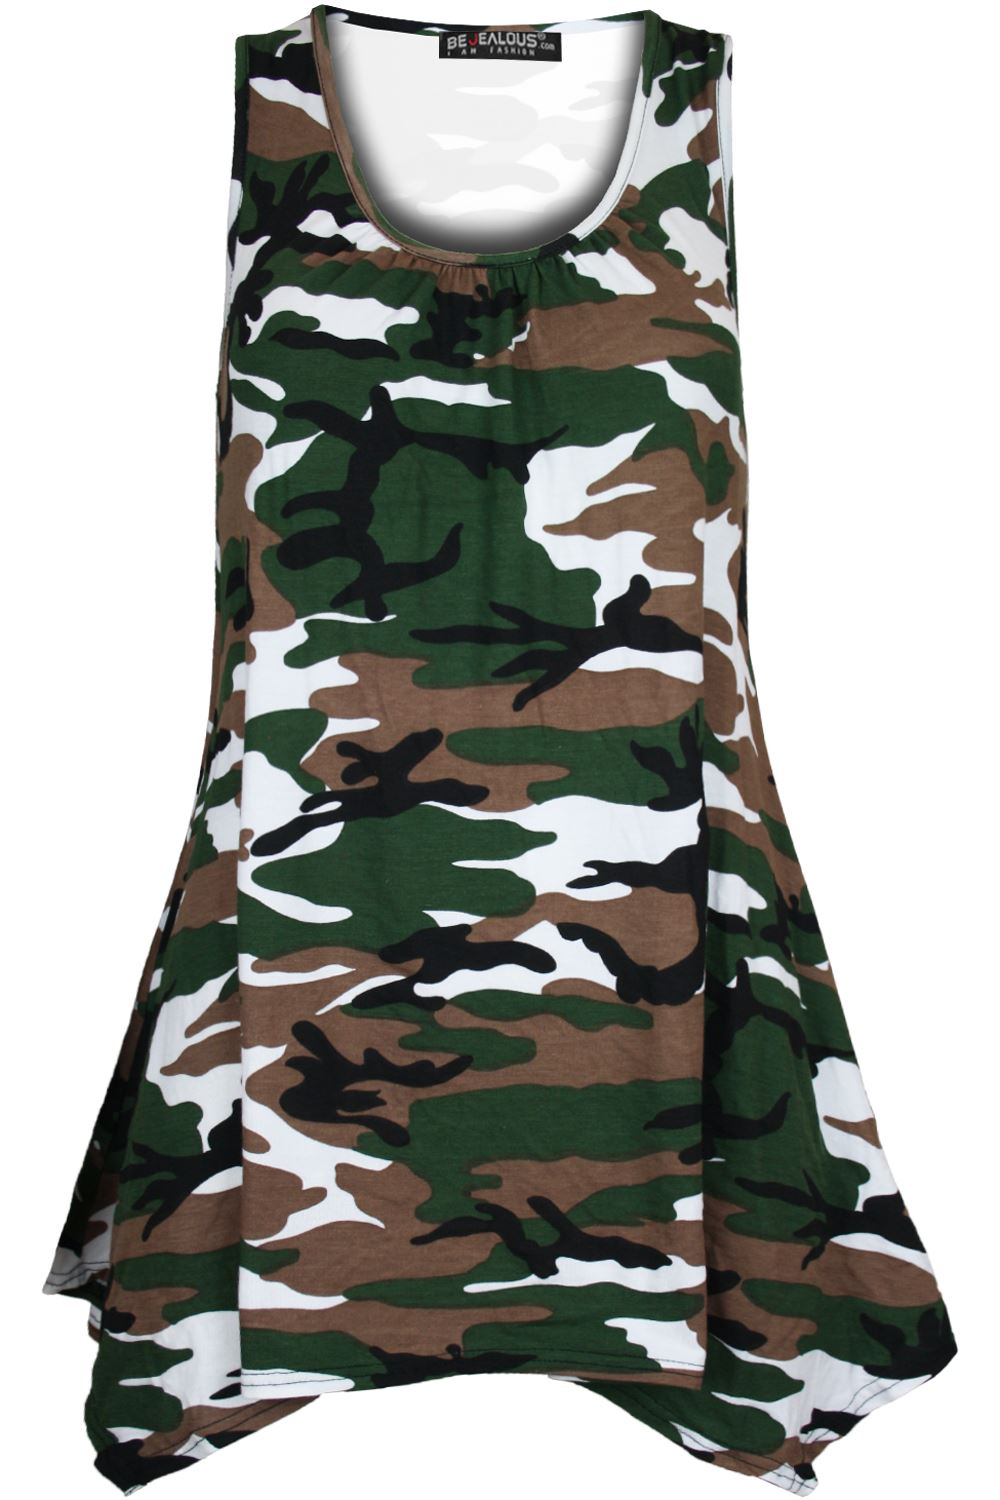 Shop for Yaya Aflalo Baoli Silk Chiffon Strapless Dress in Army Print at REVOLVE. Free day shipping and returns, 30 day price match guarantee.